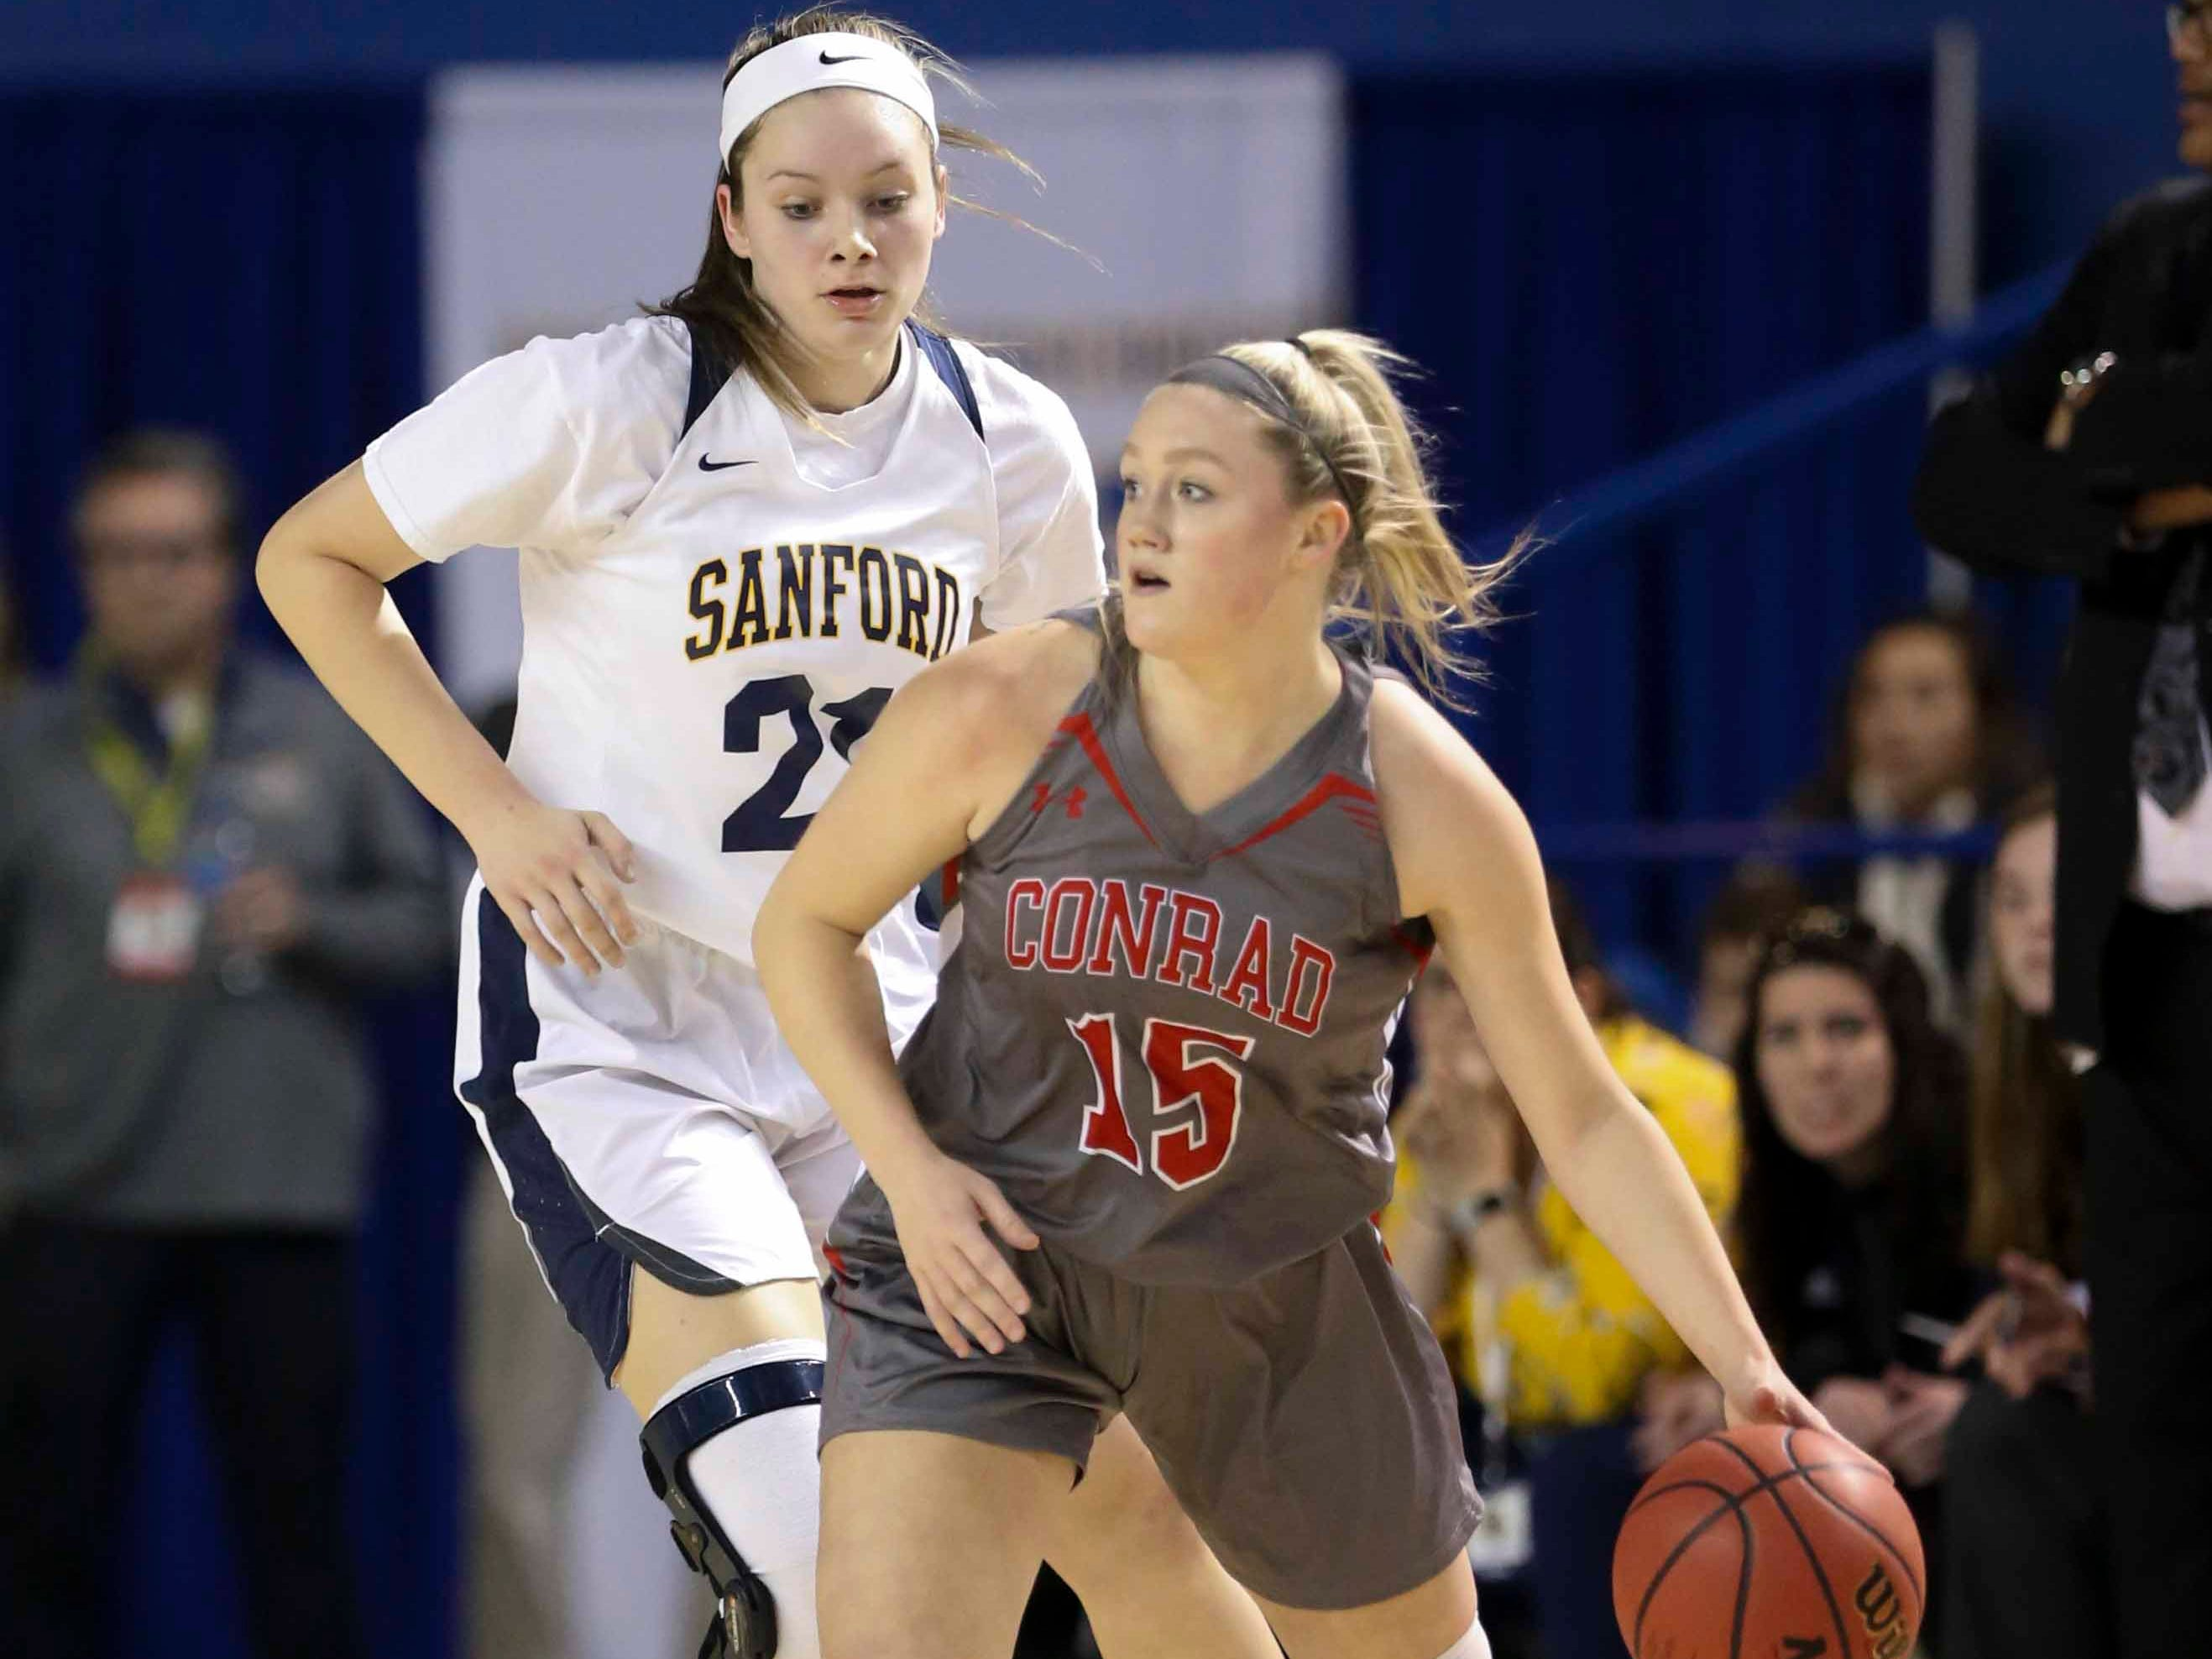 Conrad's Jordan Rook (front) is guarded by Sanford's Allie Kubek in the first half of a DIAA state tournament semifinal at the Bob Carpenter Center Wednesday.